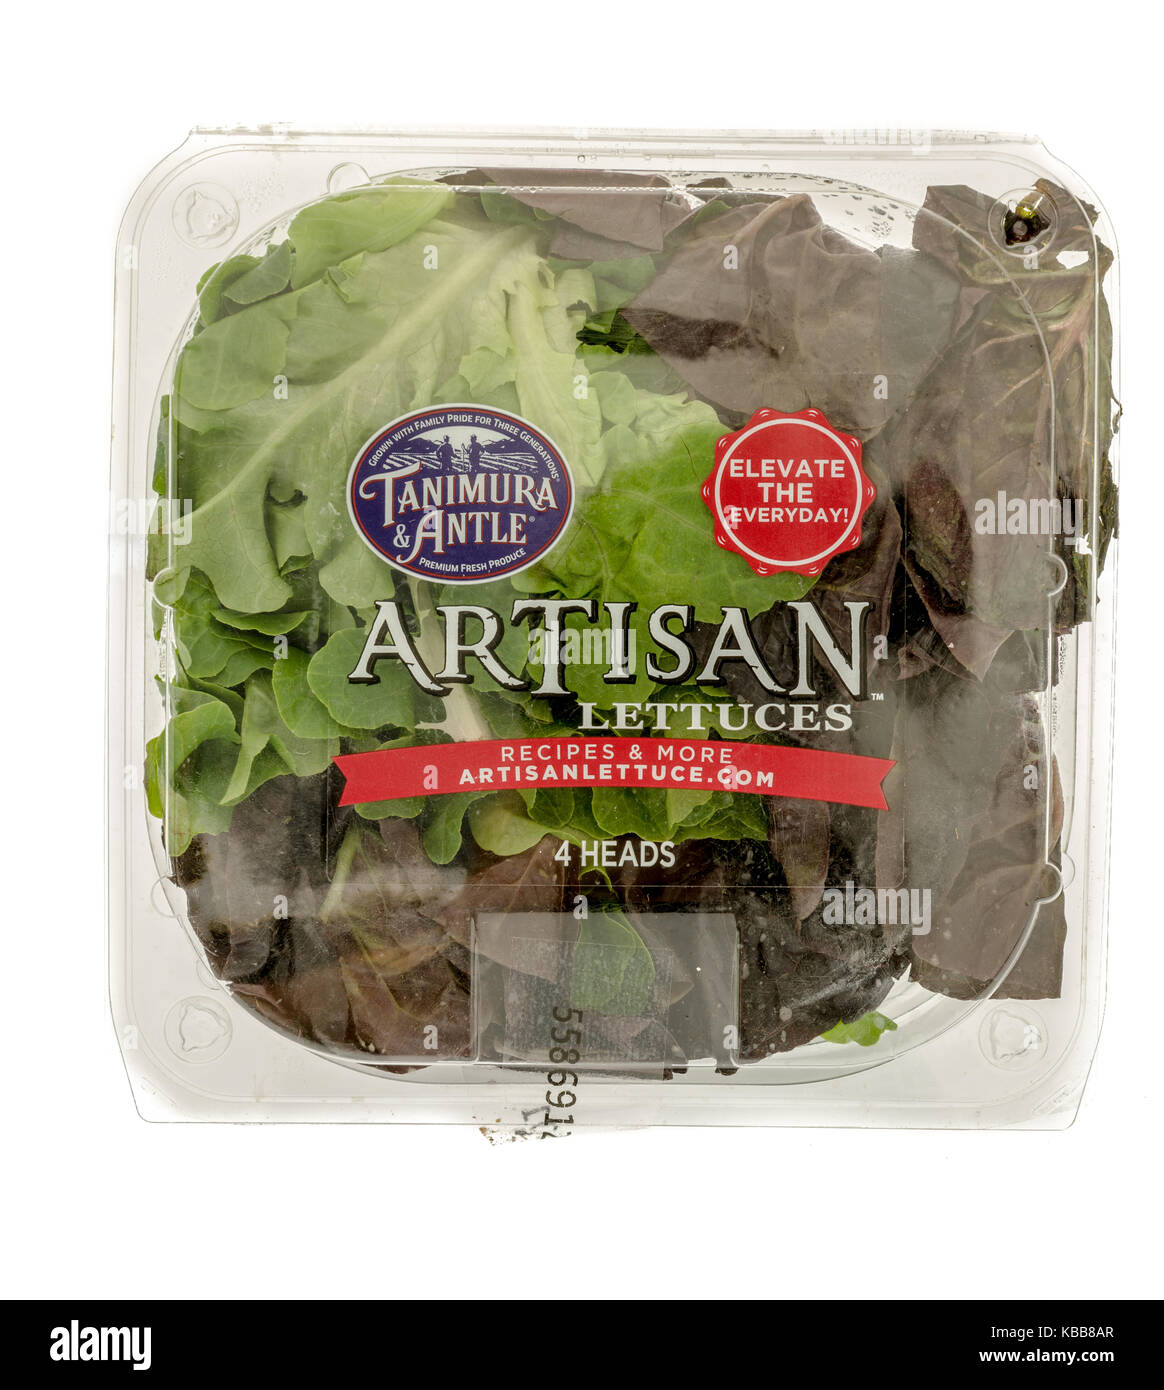 Winneconne, WI - 28 September 2017: A package of Tanimura and Antle artisan lettuces on an isolated background. - Stock Image